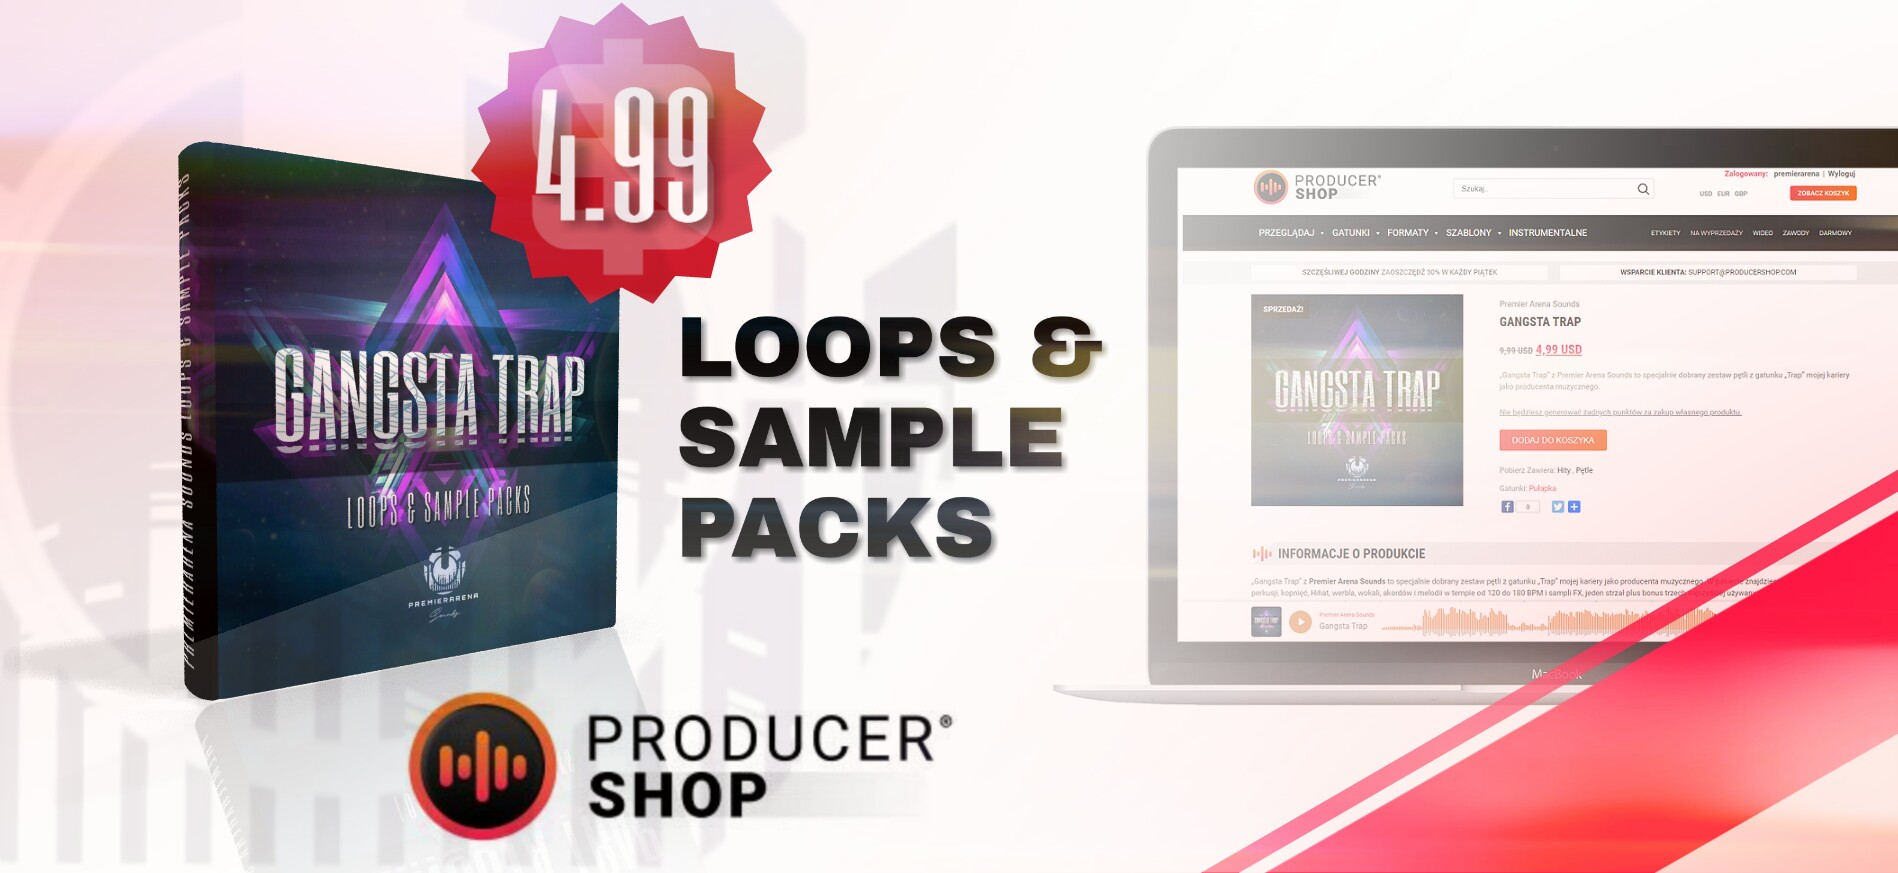 GANGSTA TRAP LOOPS & SAMPLE PACKS